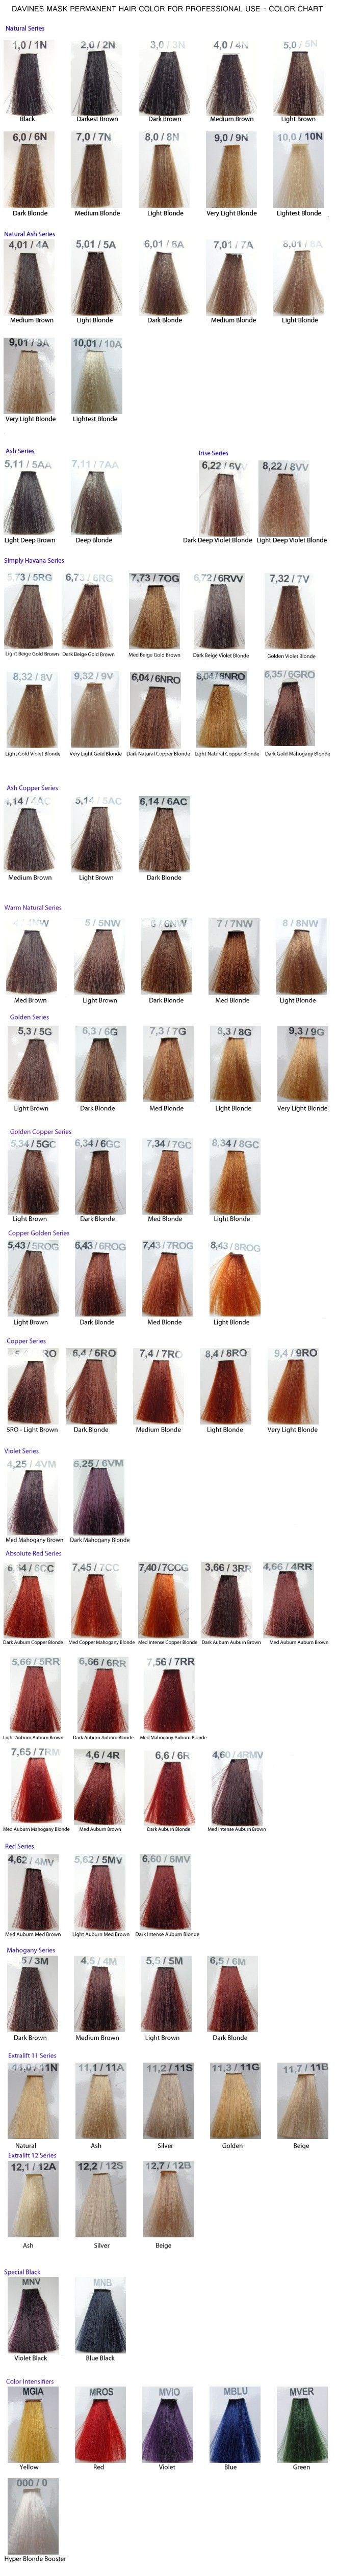 Davines Mask Color Chart Hair Color Chart Hair Color Trendy Hair Color